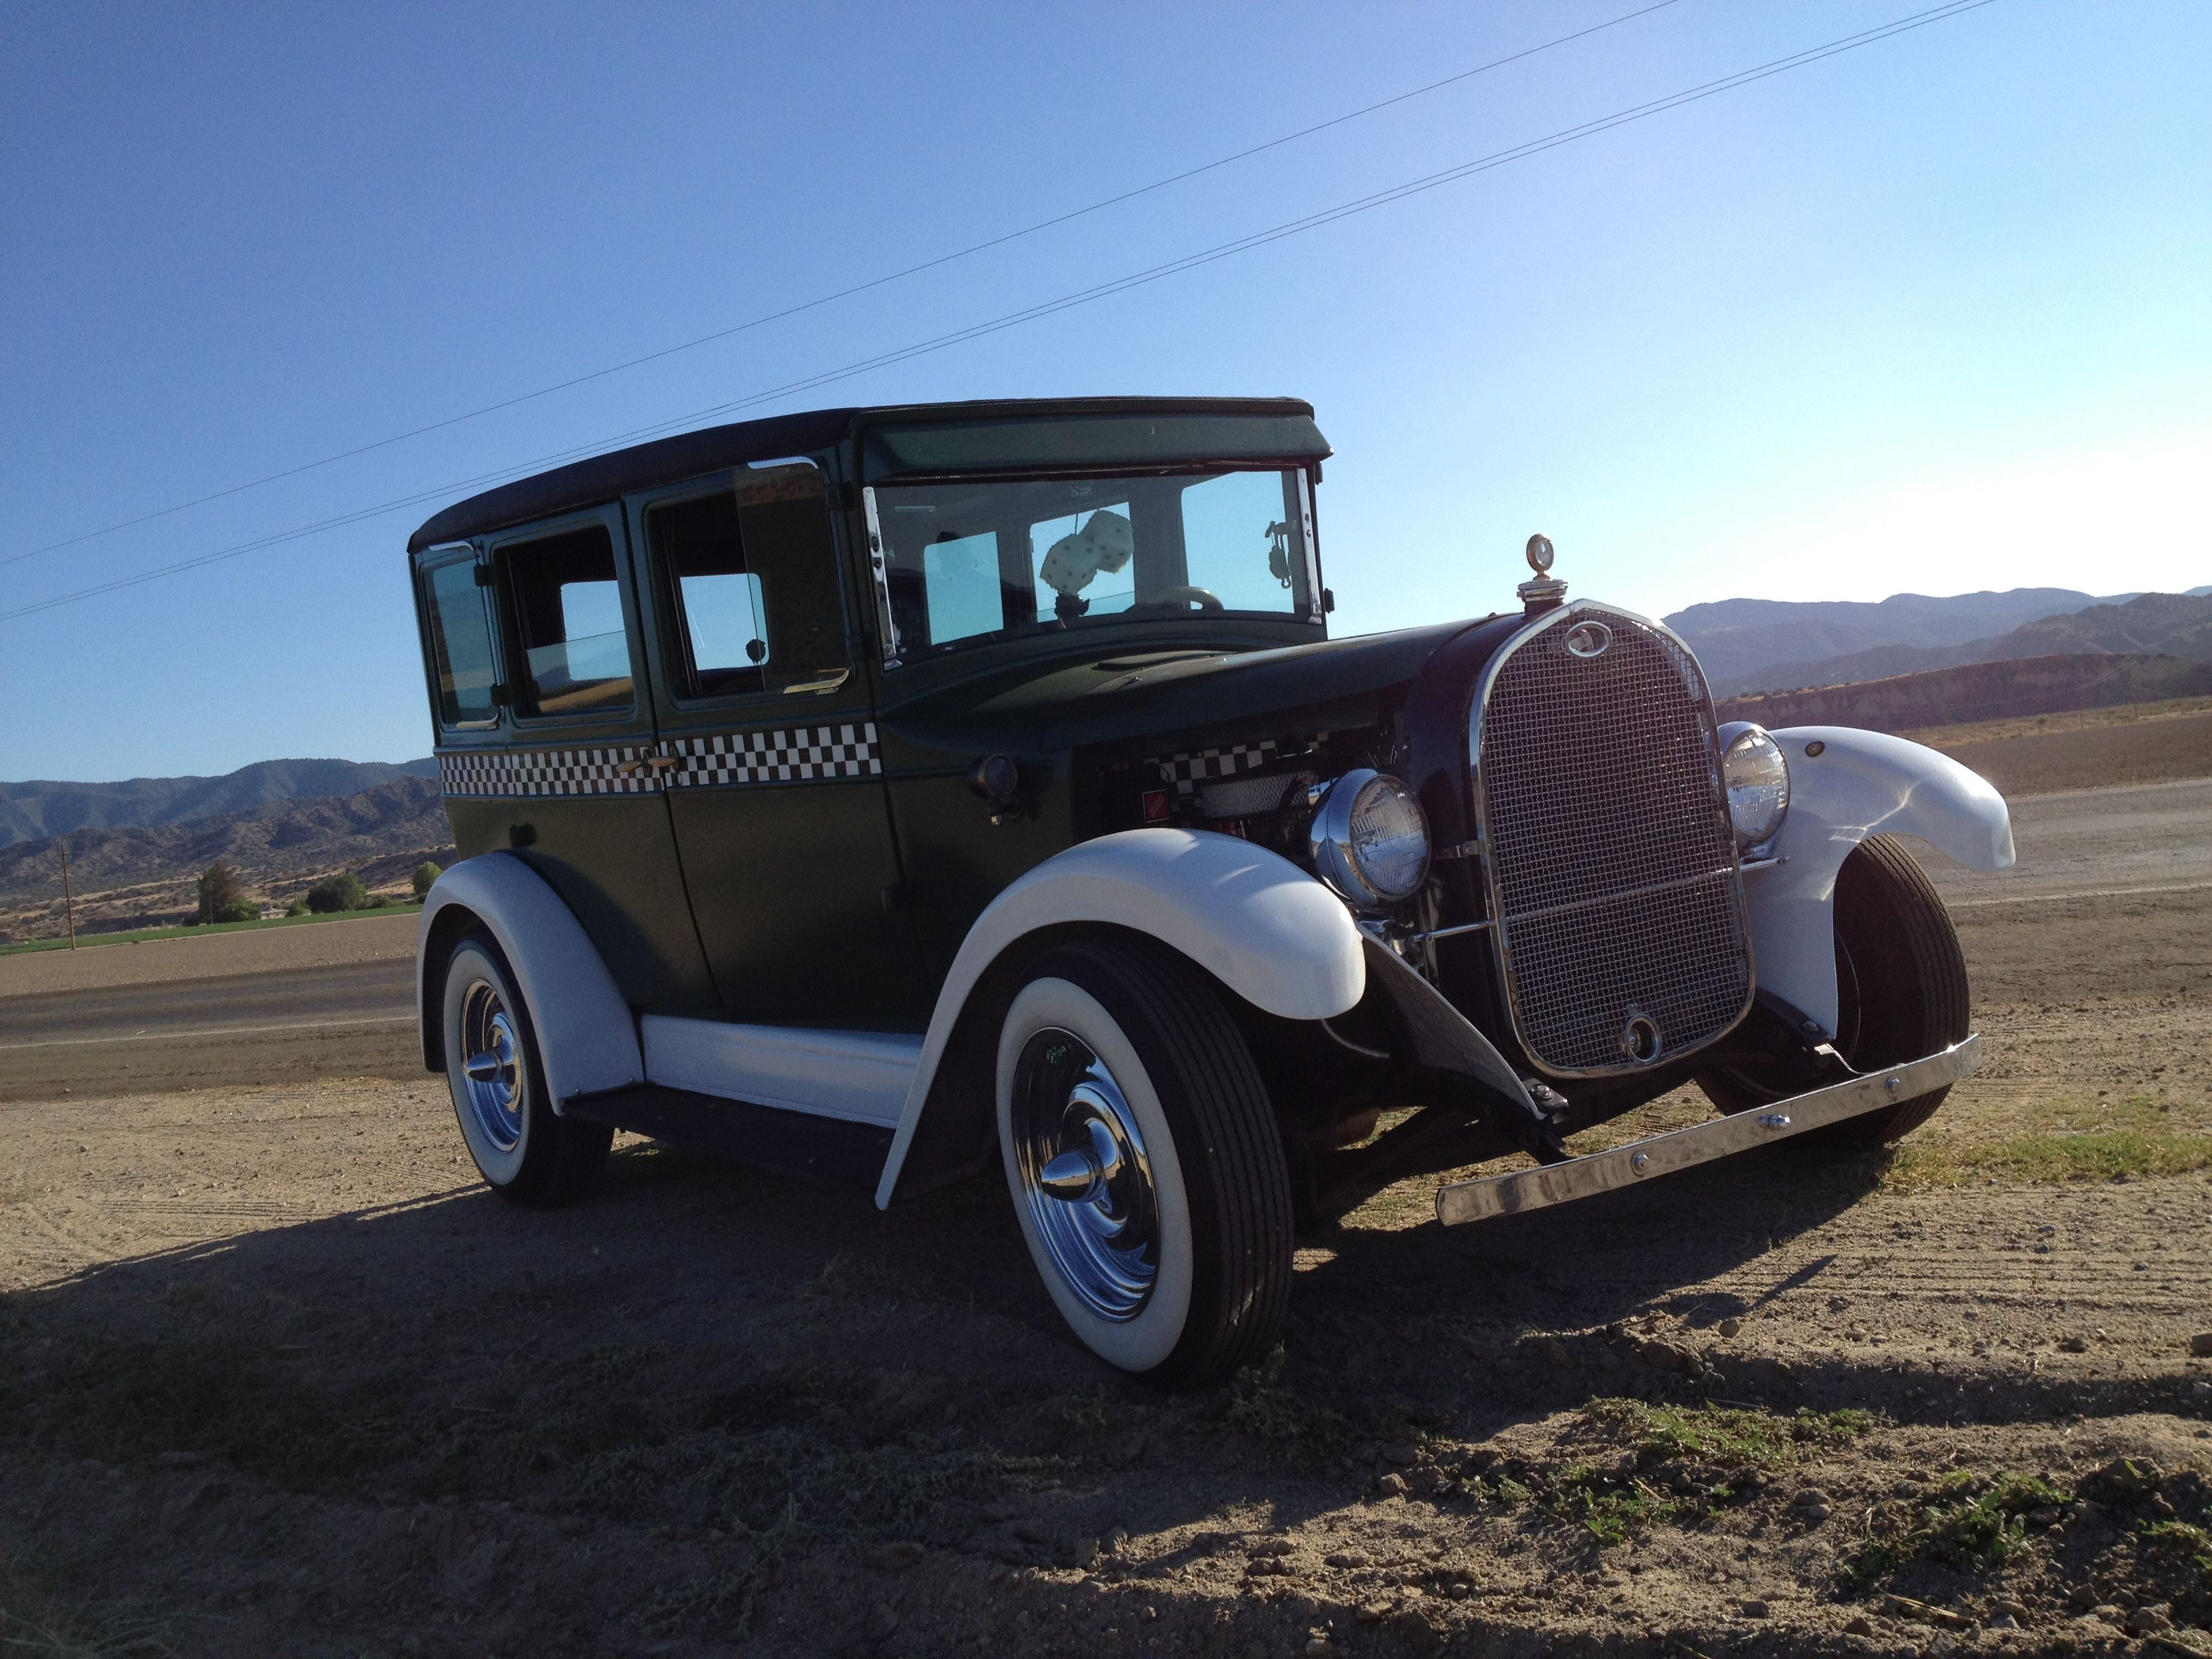 1929 Willys Overland Whippet American Classic Cars Classic Cars Willys